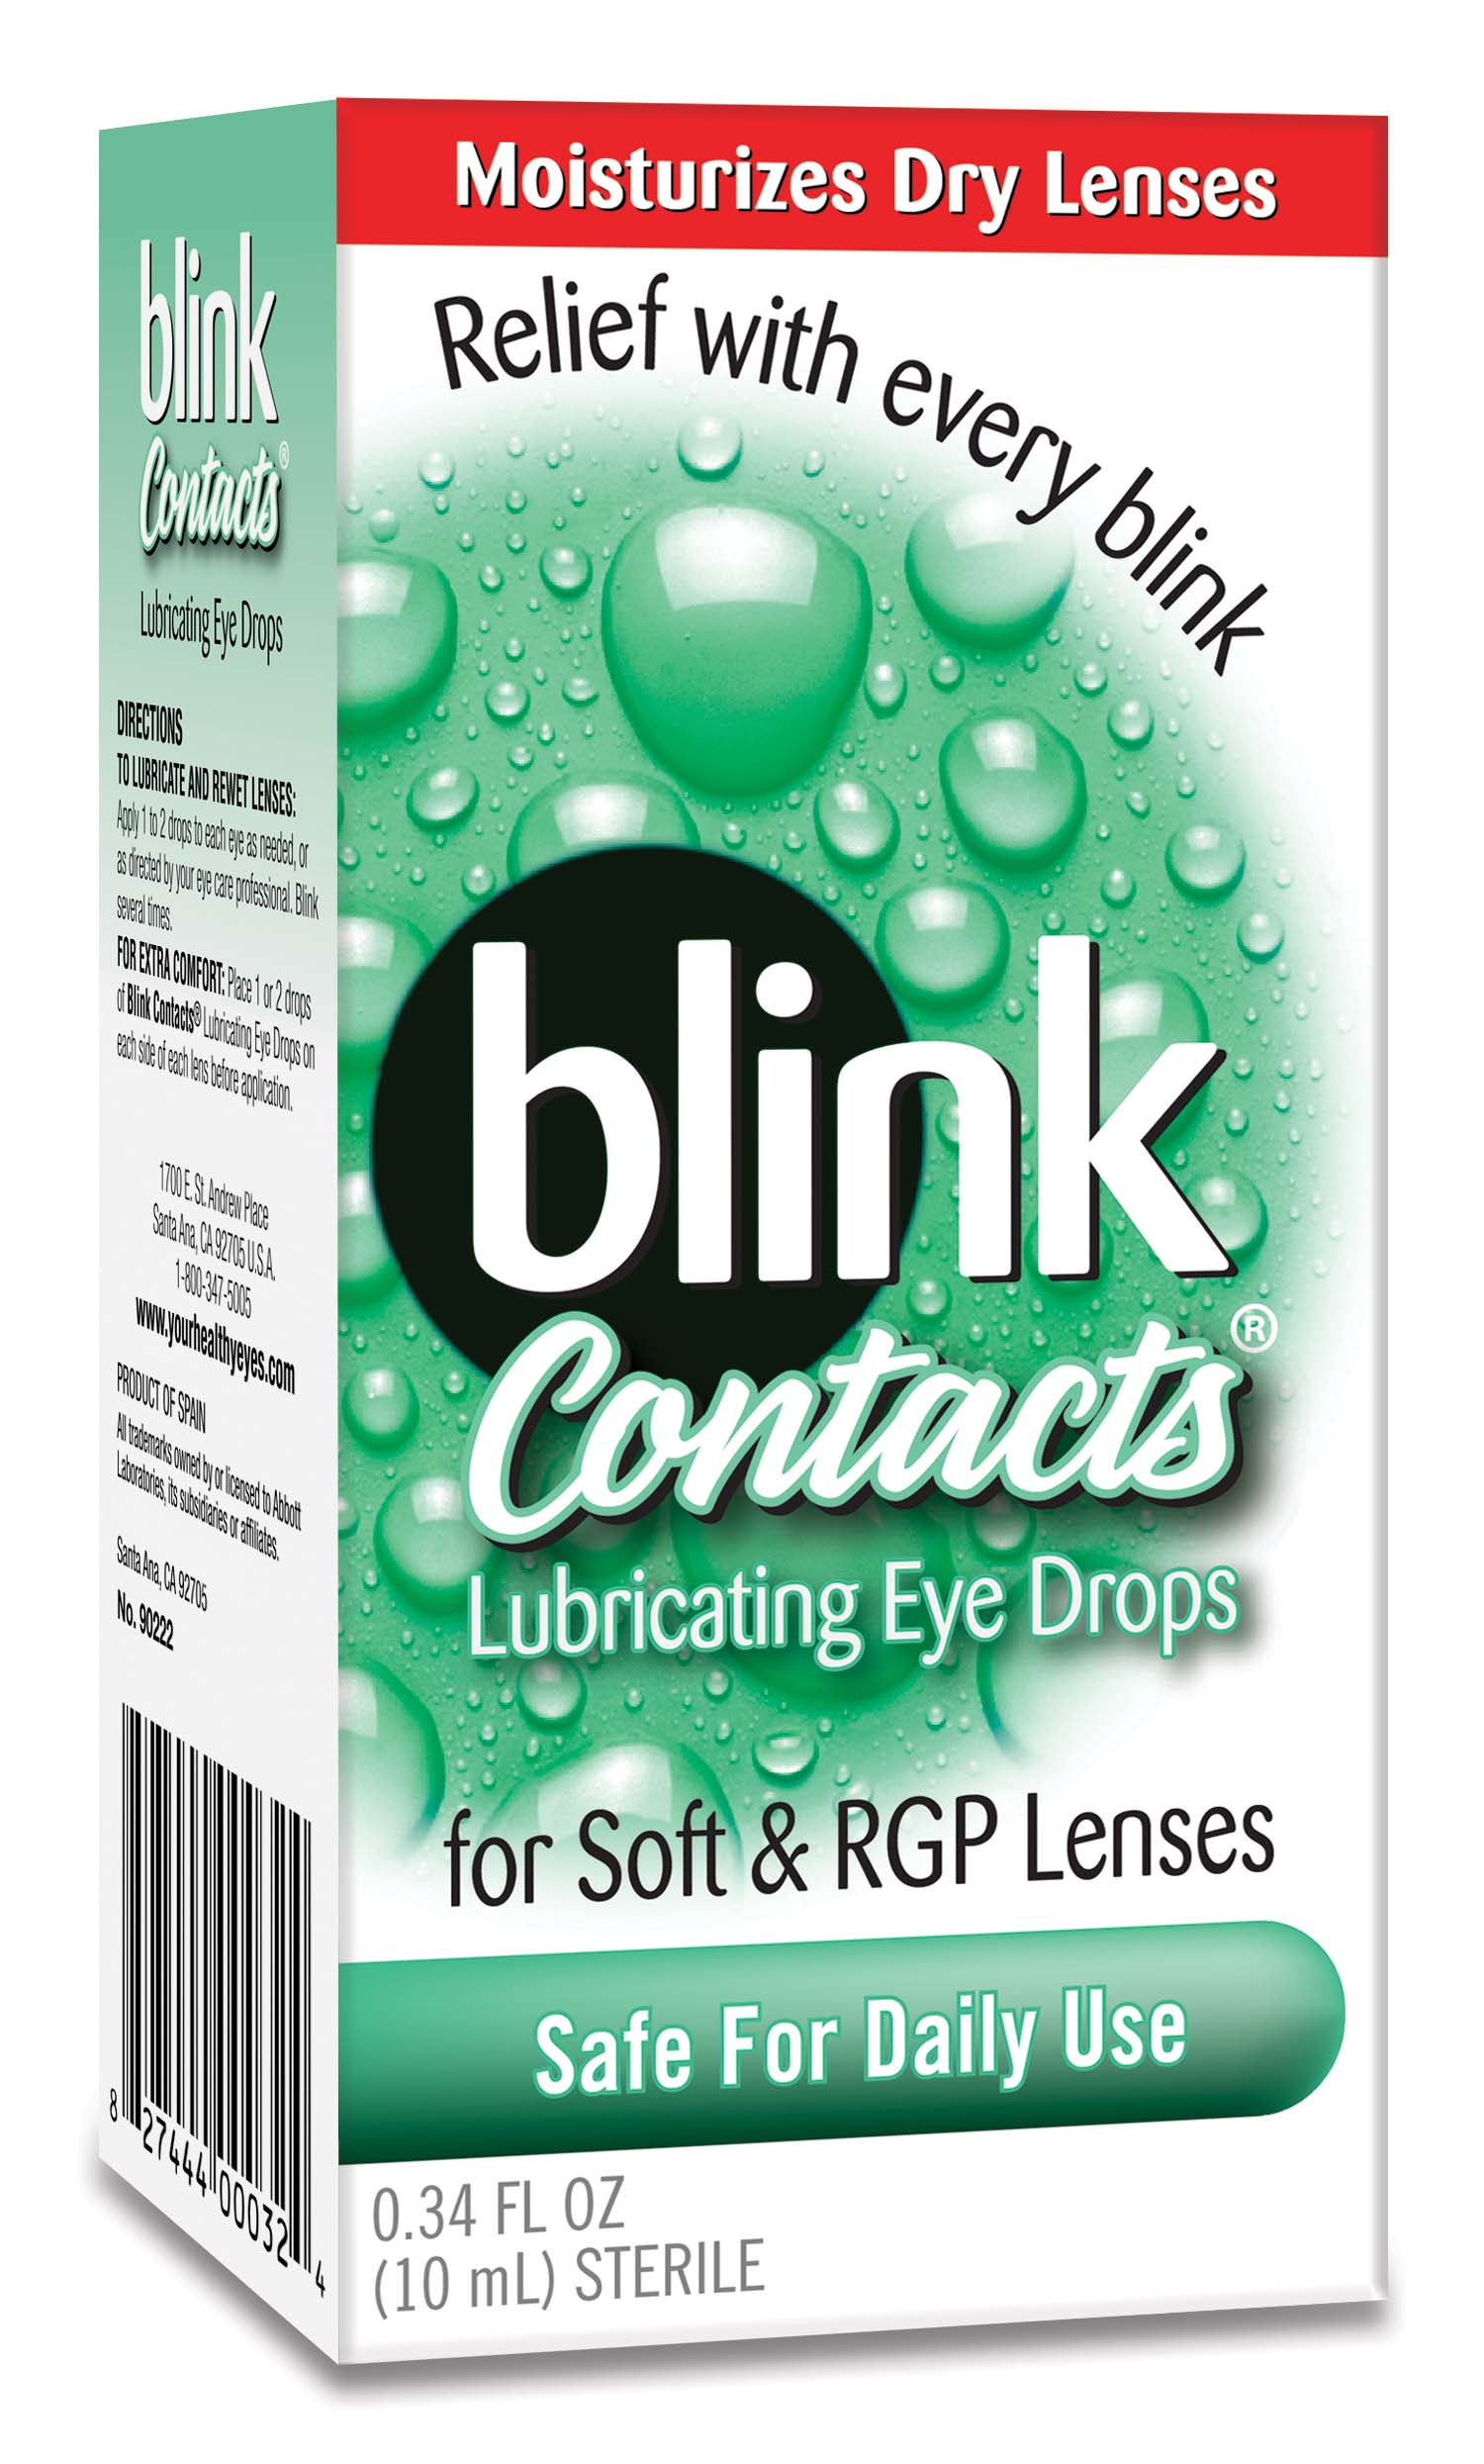 Does walmart have contacts in store